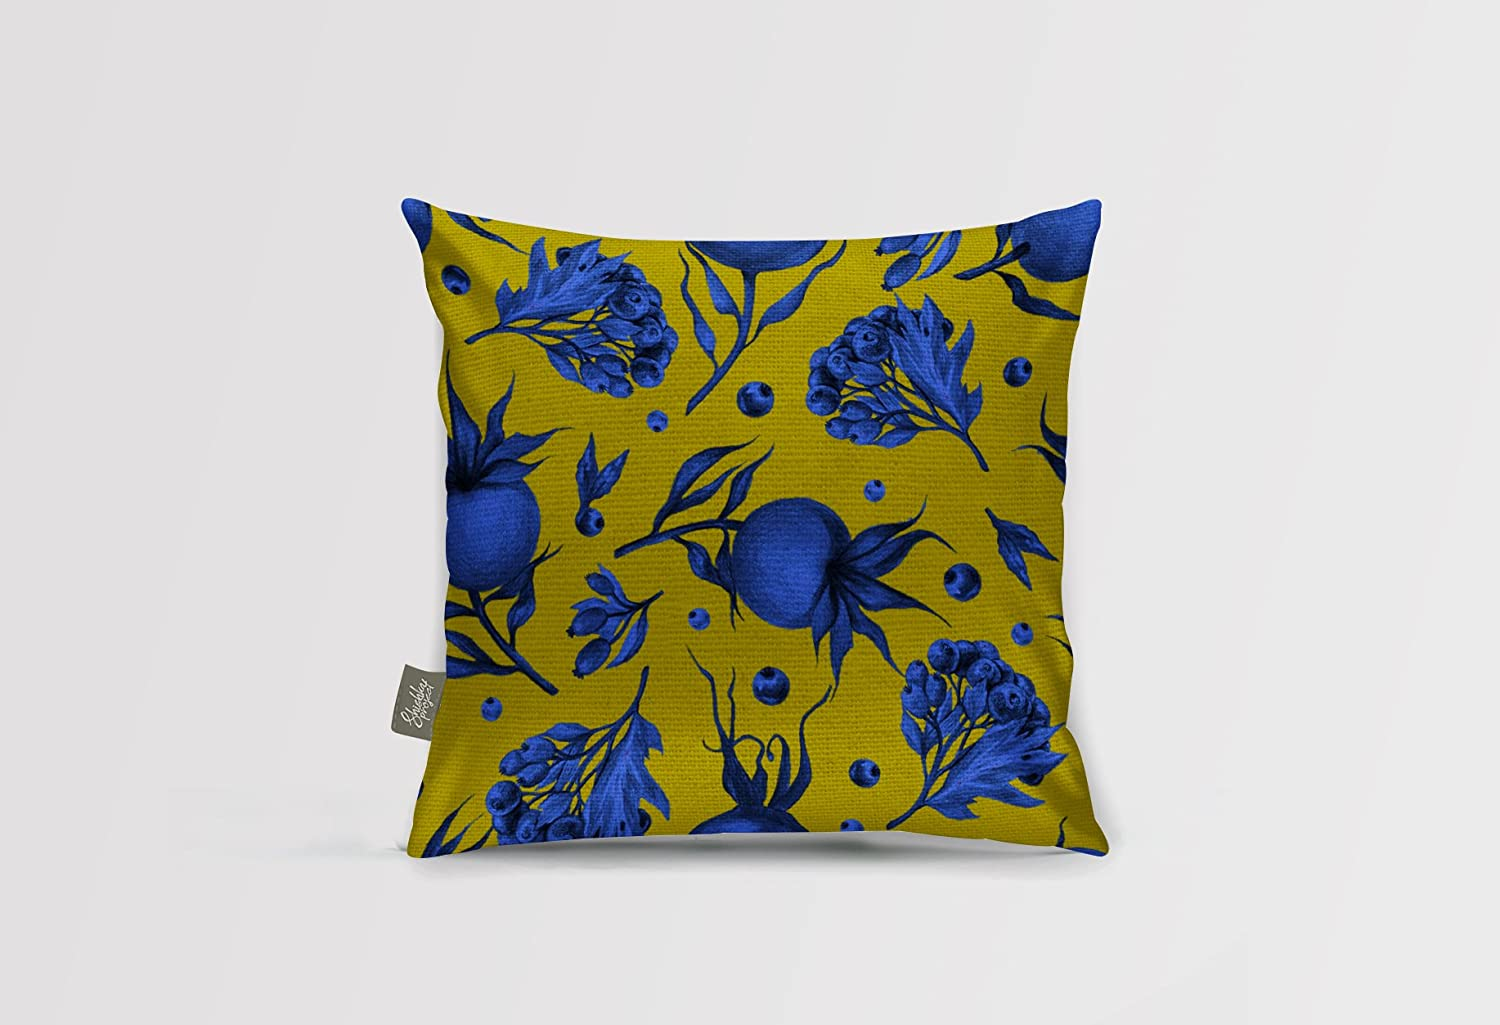 Shishka Project Throw Pillows Pillow Cases Decorative Cushion Blueberries Designer Pillow Home decor pillow Accent Pillows Sofa Pillows Cushion Covers (4, Pillow with insert)